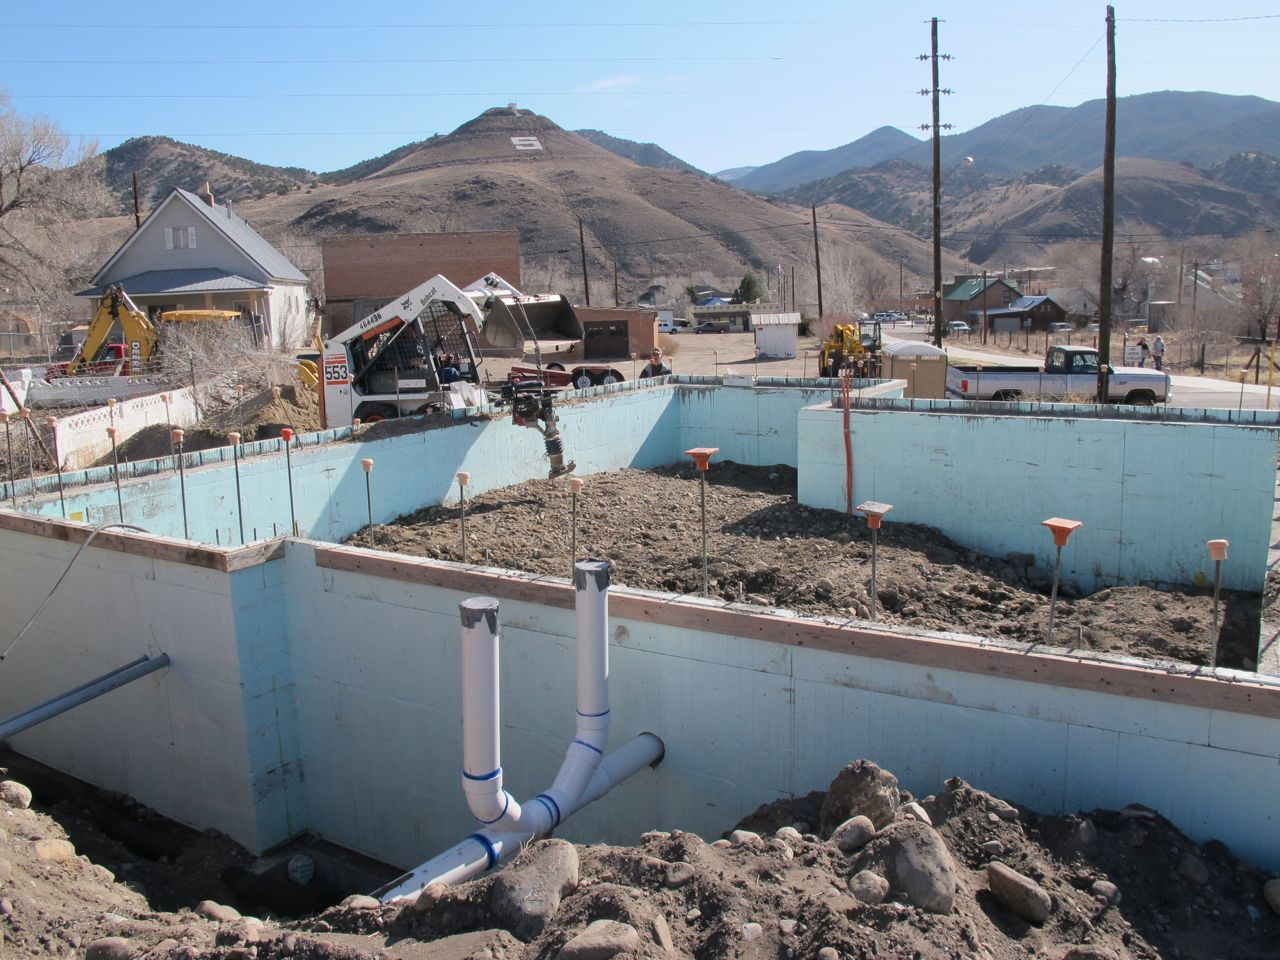 """Pouring """"dirty"""" roadbase--the kind with lots of fines so it compacts well--under what will be the slab floor of my tiny house. (Not the sewer pipe going through the foundation in the foreground and the orange water pipe in the background where the kitchen will be.)"""